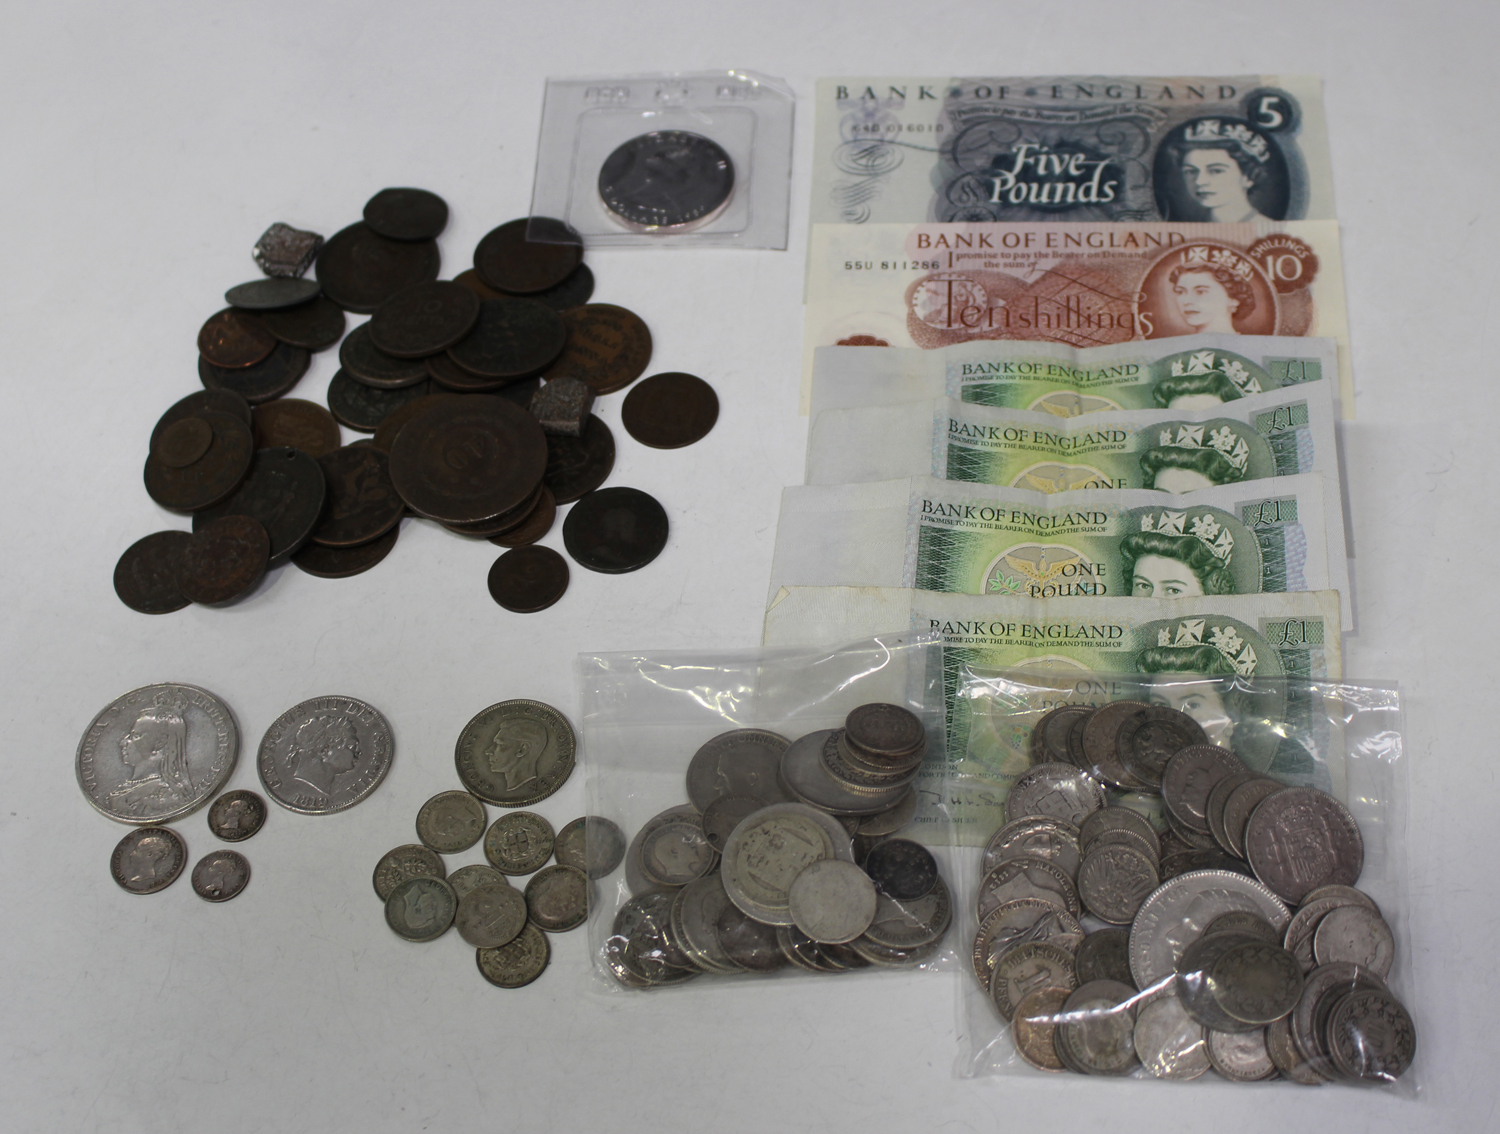 A small collection of British and world coins, including a